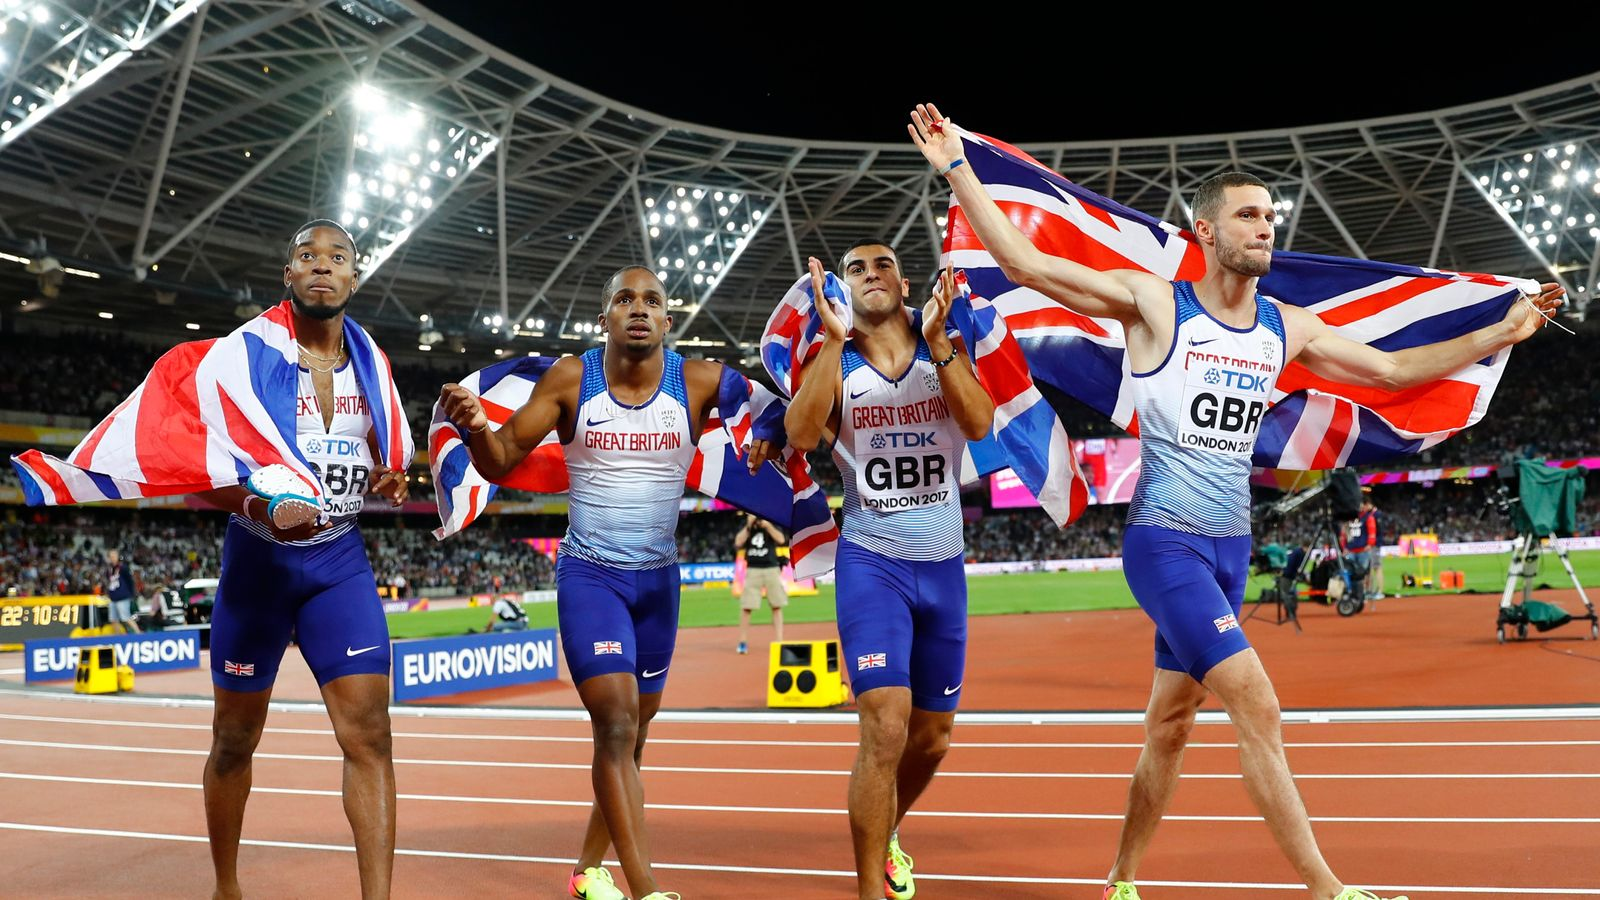 Britain wins relay gold as Sir Mo Farah claims silver in 5,000m at world championships